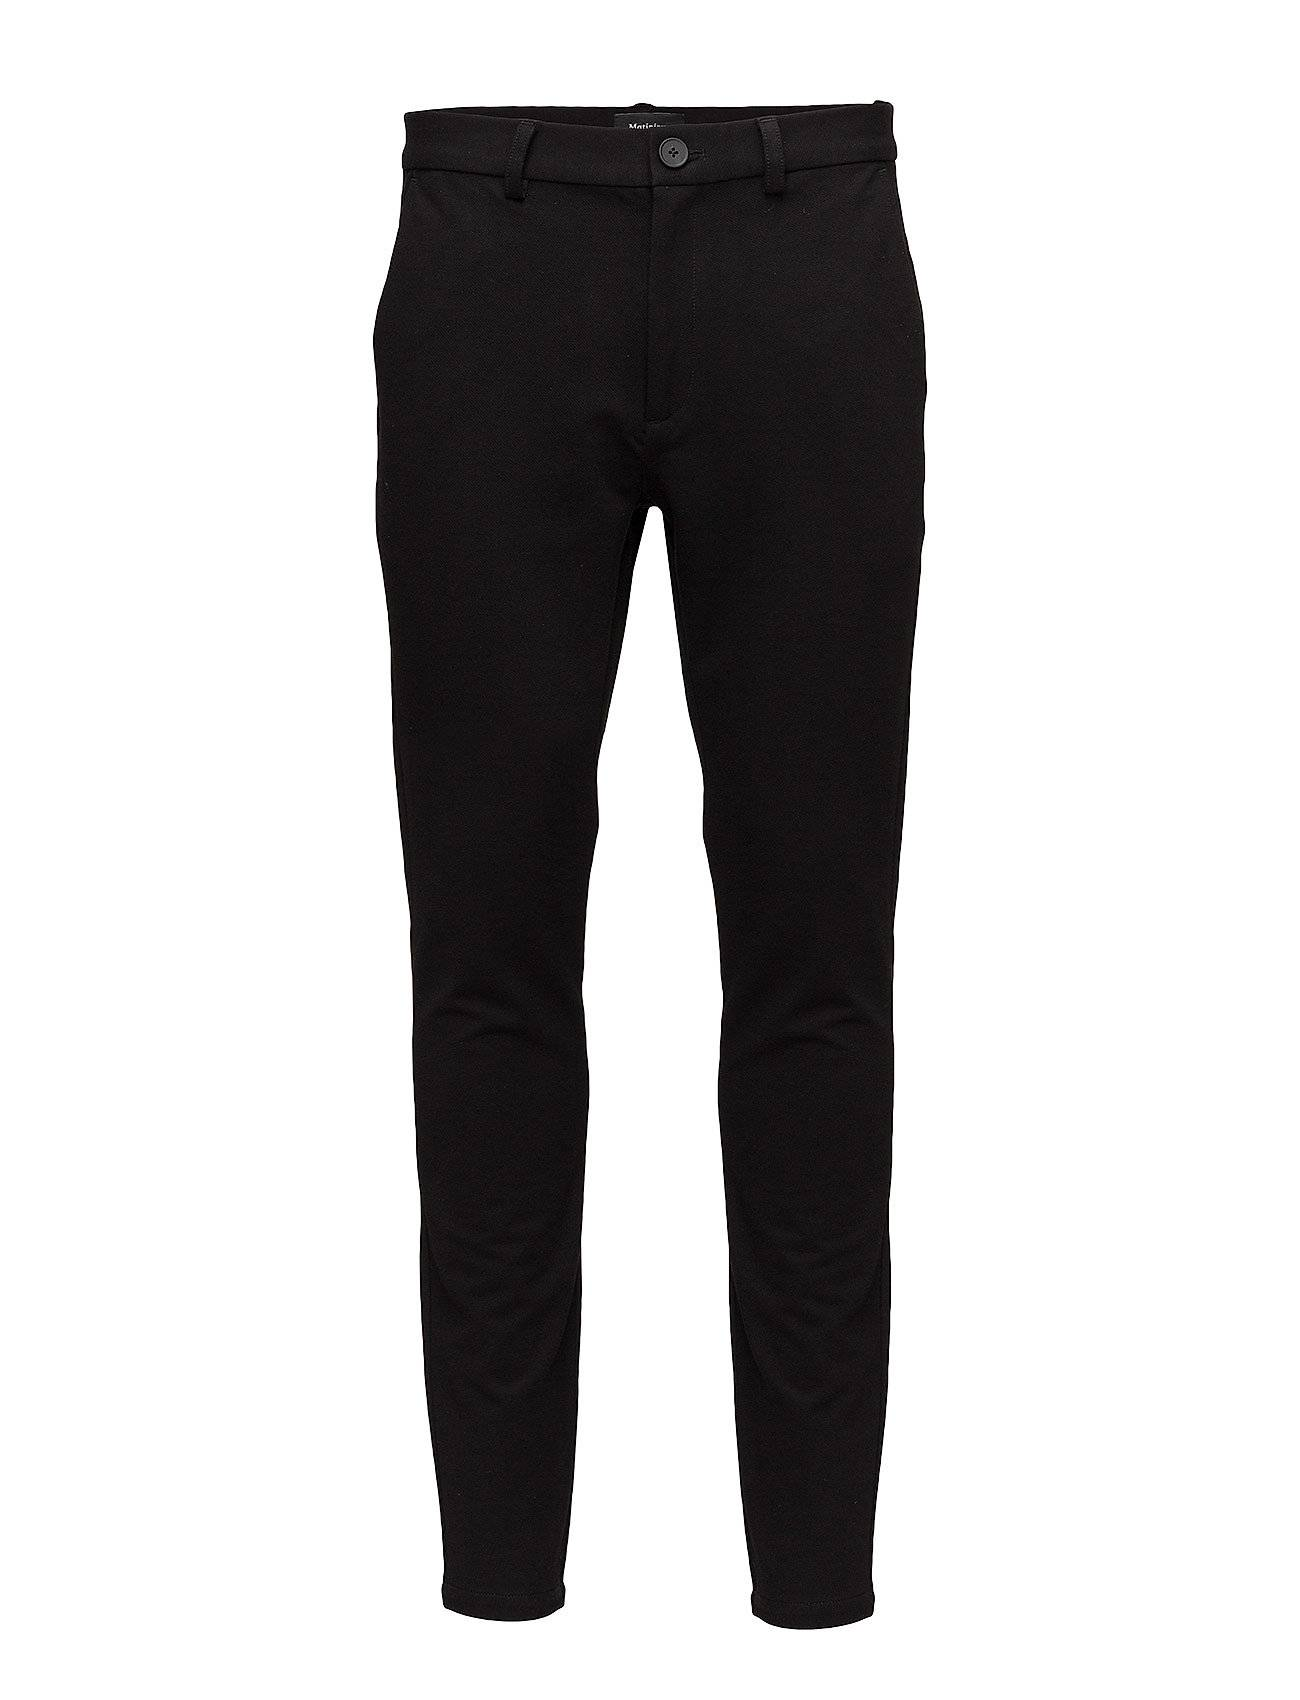 Matinique Pall Jersey Pant Woven Jersey